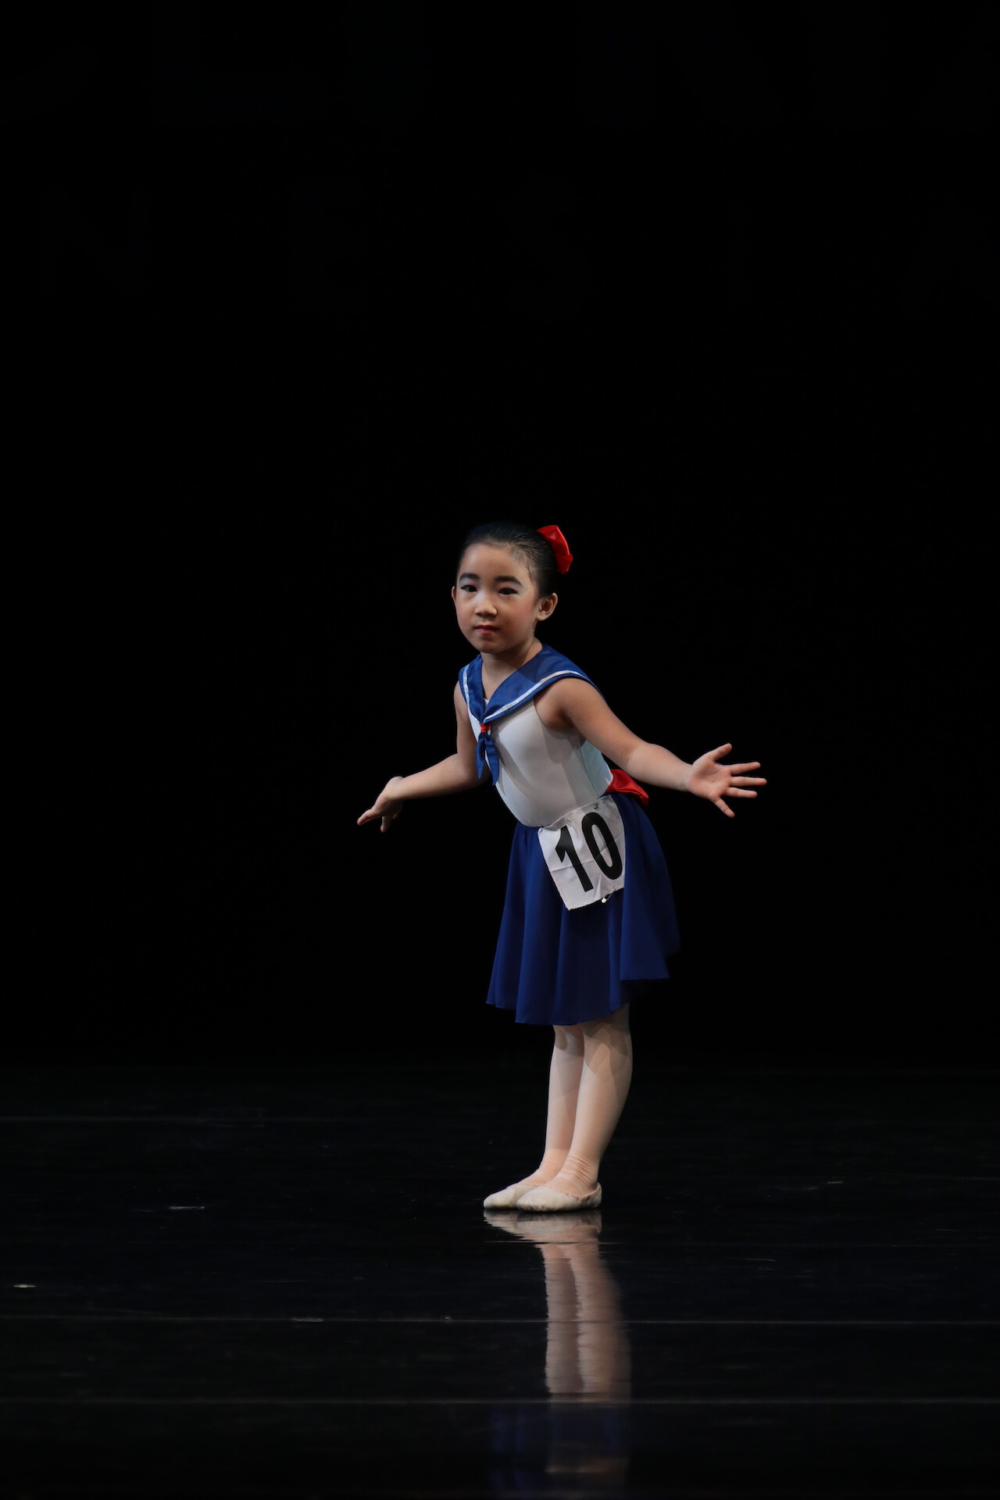 Dance Prix Indonesia 2019 – Young Talent 2nd Place, Priscilla Regina Yoswara (Clara School of Ballet)